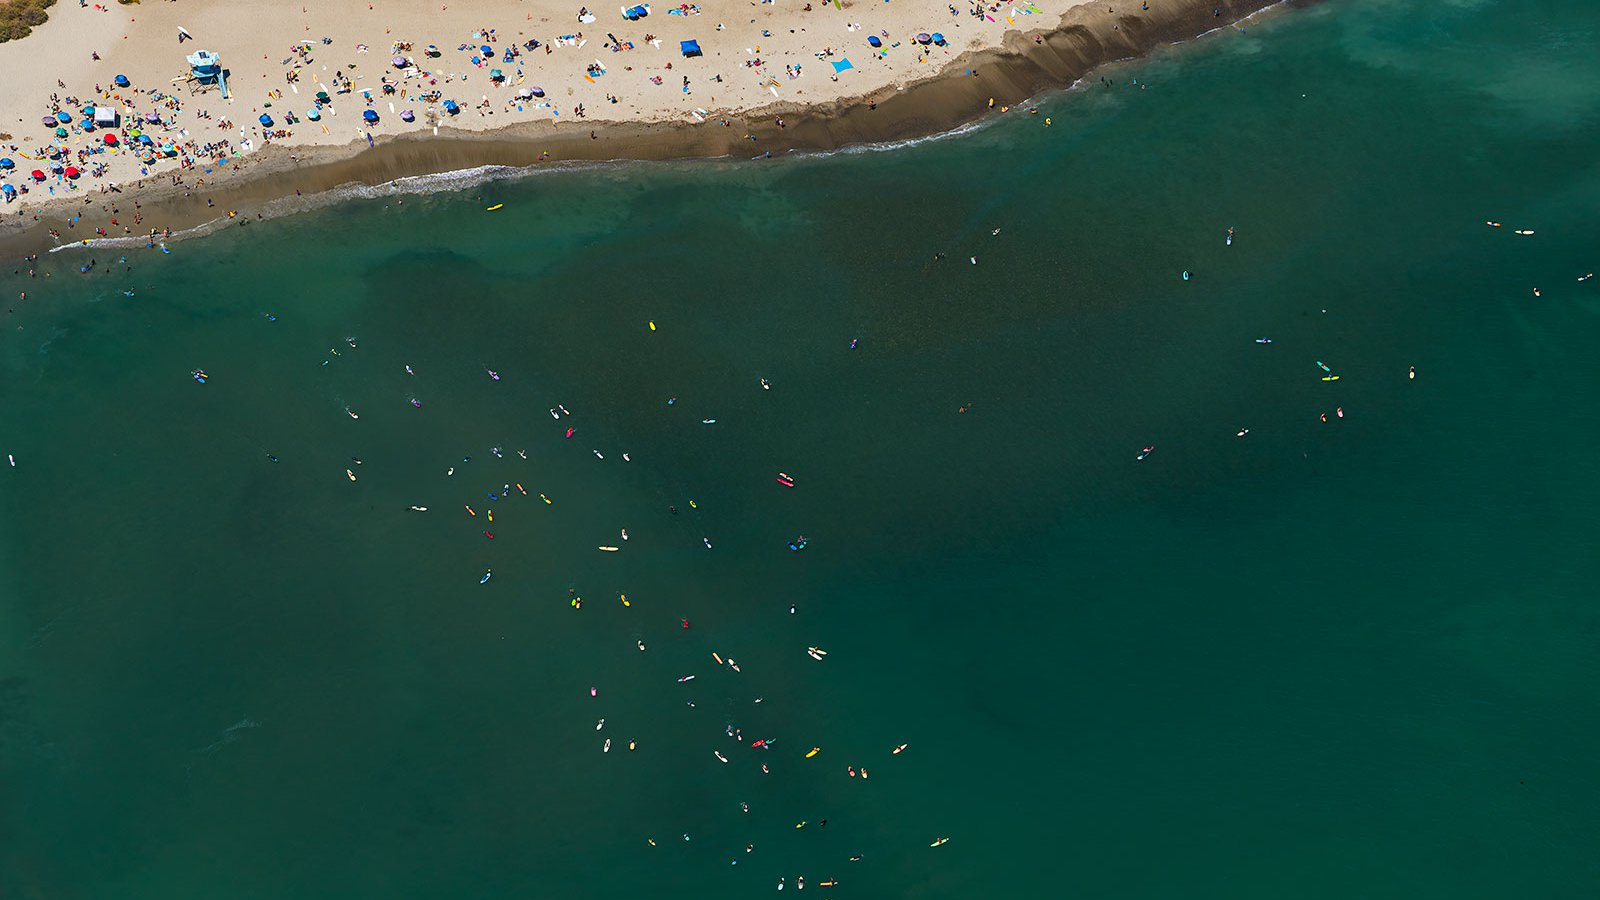 Blog image of beach goers and surfers in Dana Point, California on a hot summer day